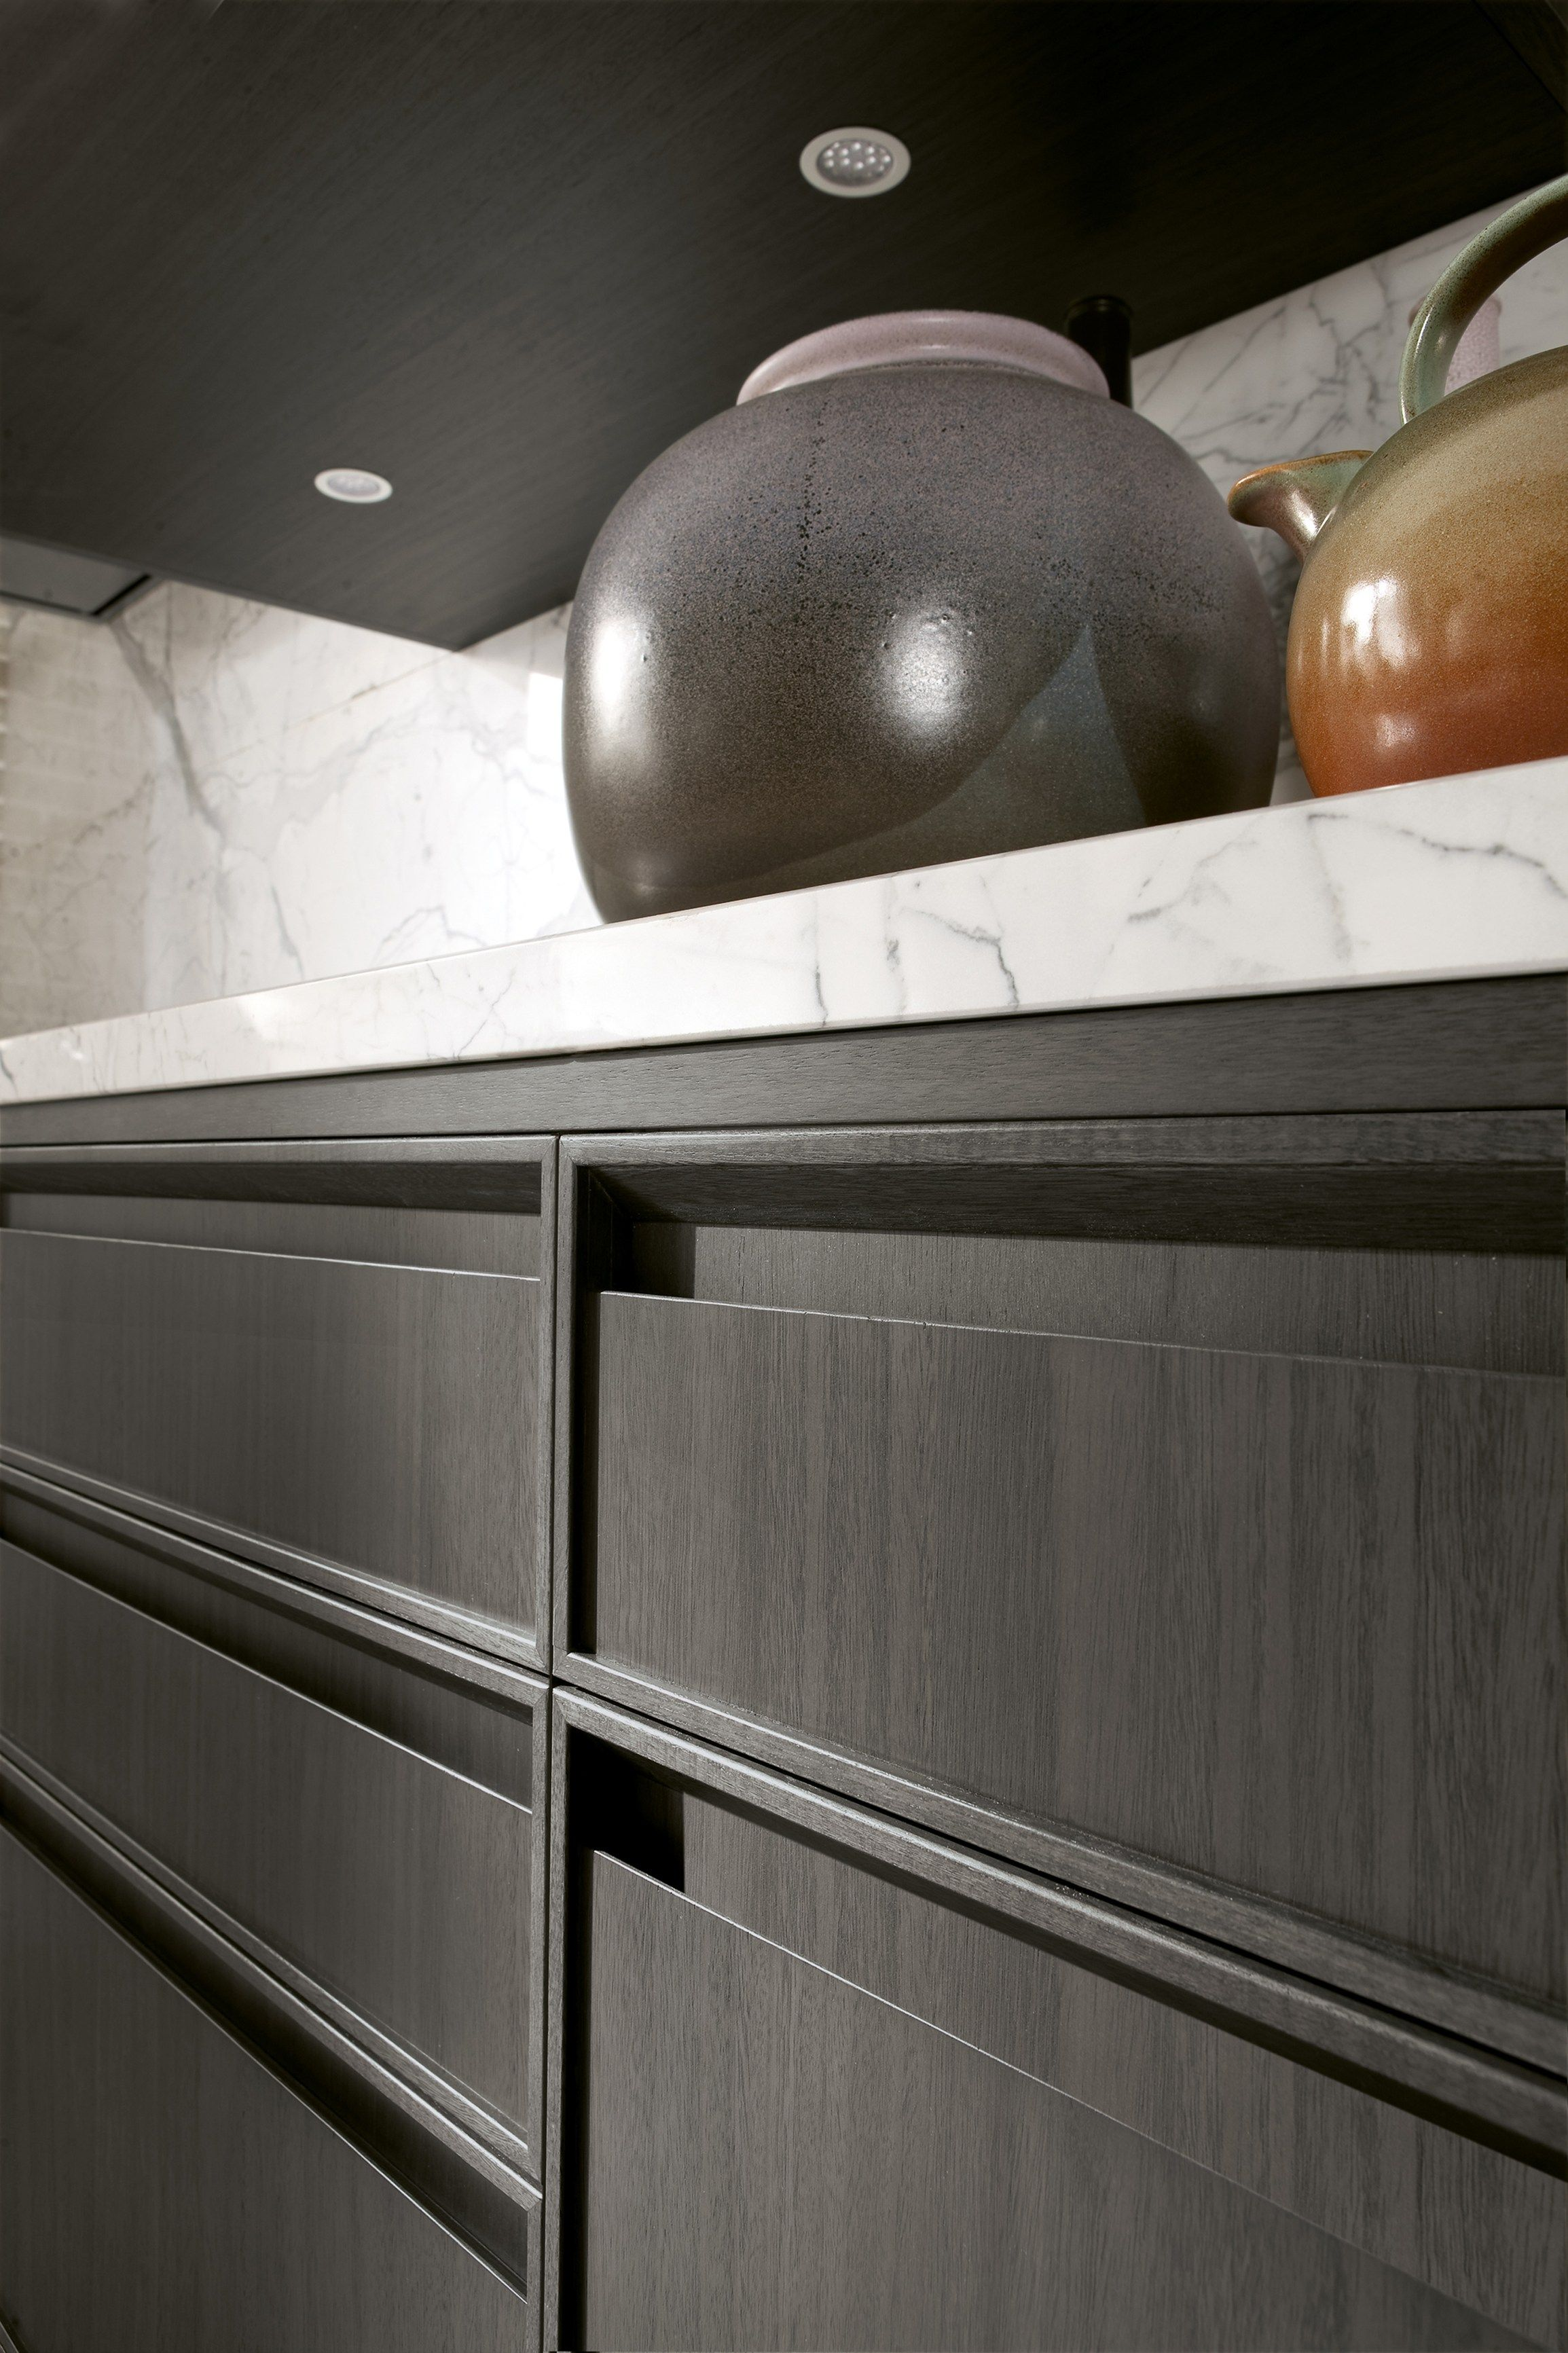 Modern Kitchen Door Handles Linear Kitchen With Integrated Handles Timeline By Aster Cucine